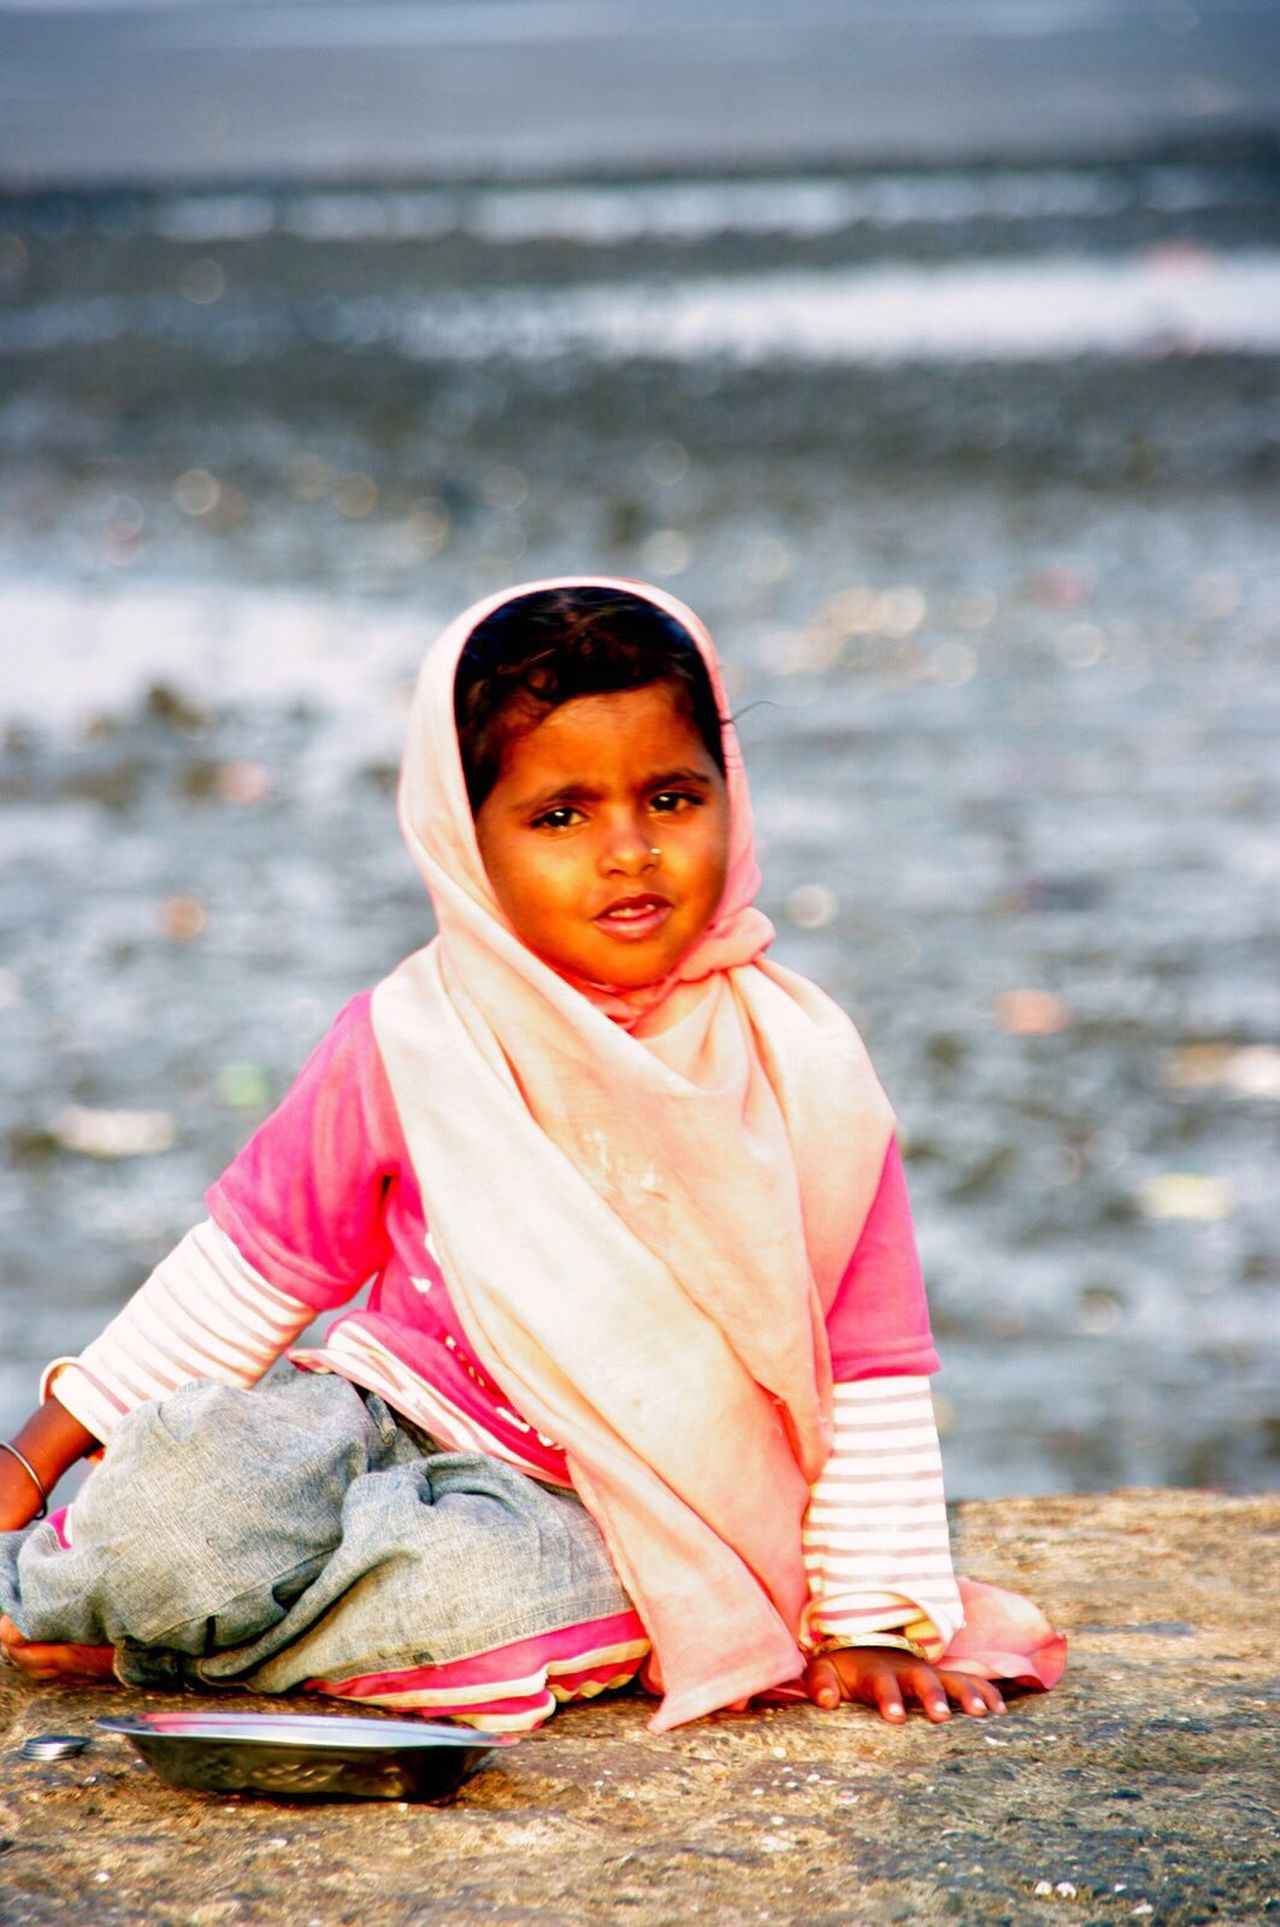 Flashback 2010 Mumbai India Portrait Little Girl Haji Ali Mumbai Mosque Pentax K20d EyeEm Best Shots - My Best Shot Color Portrait Touching Beautiful Eyes That Eyes